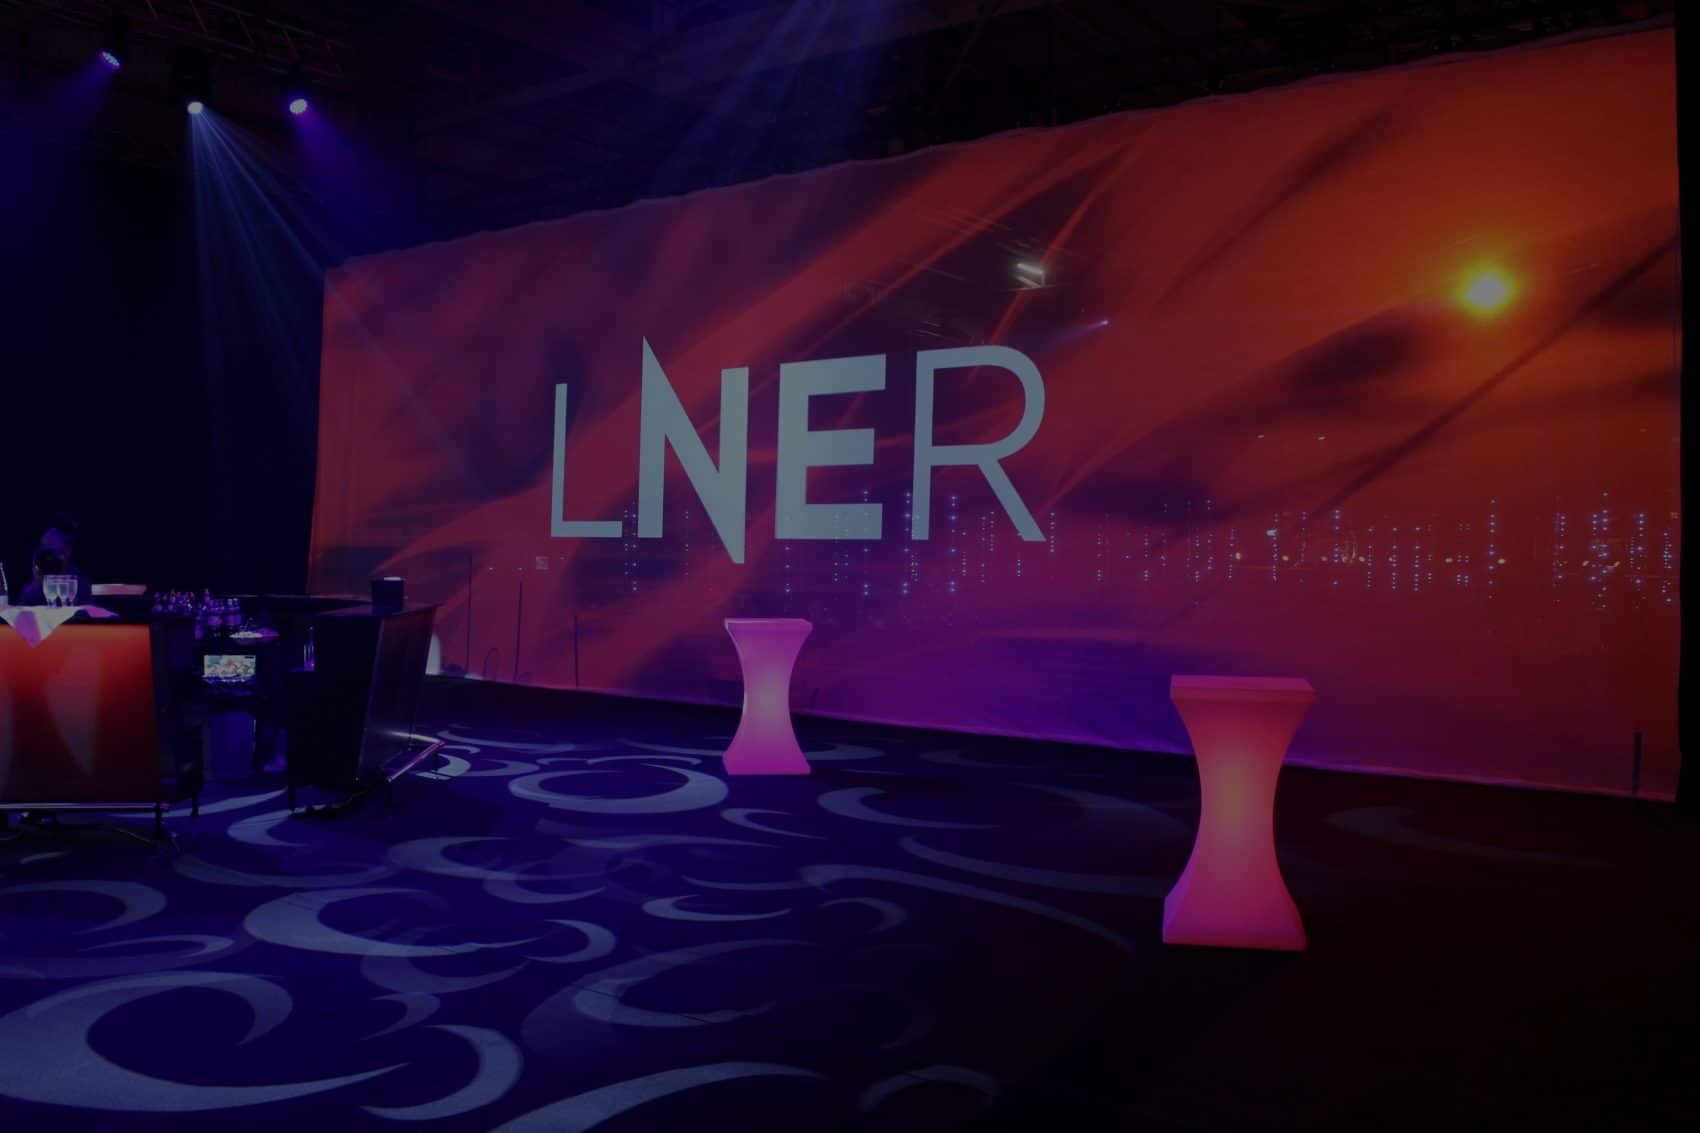 LNER Legends Awards 2018